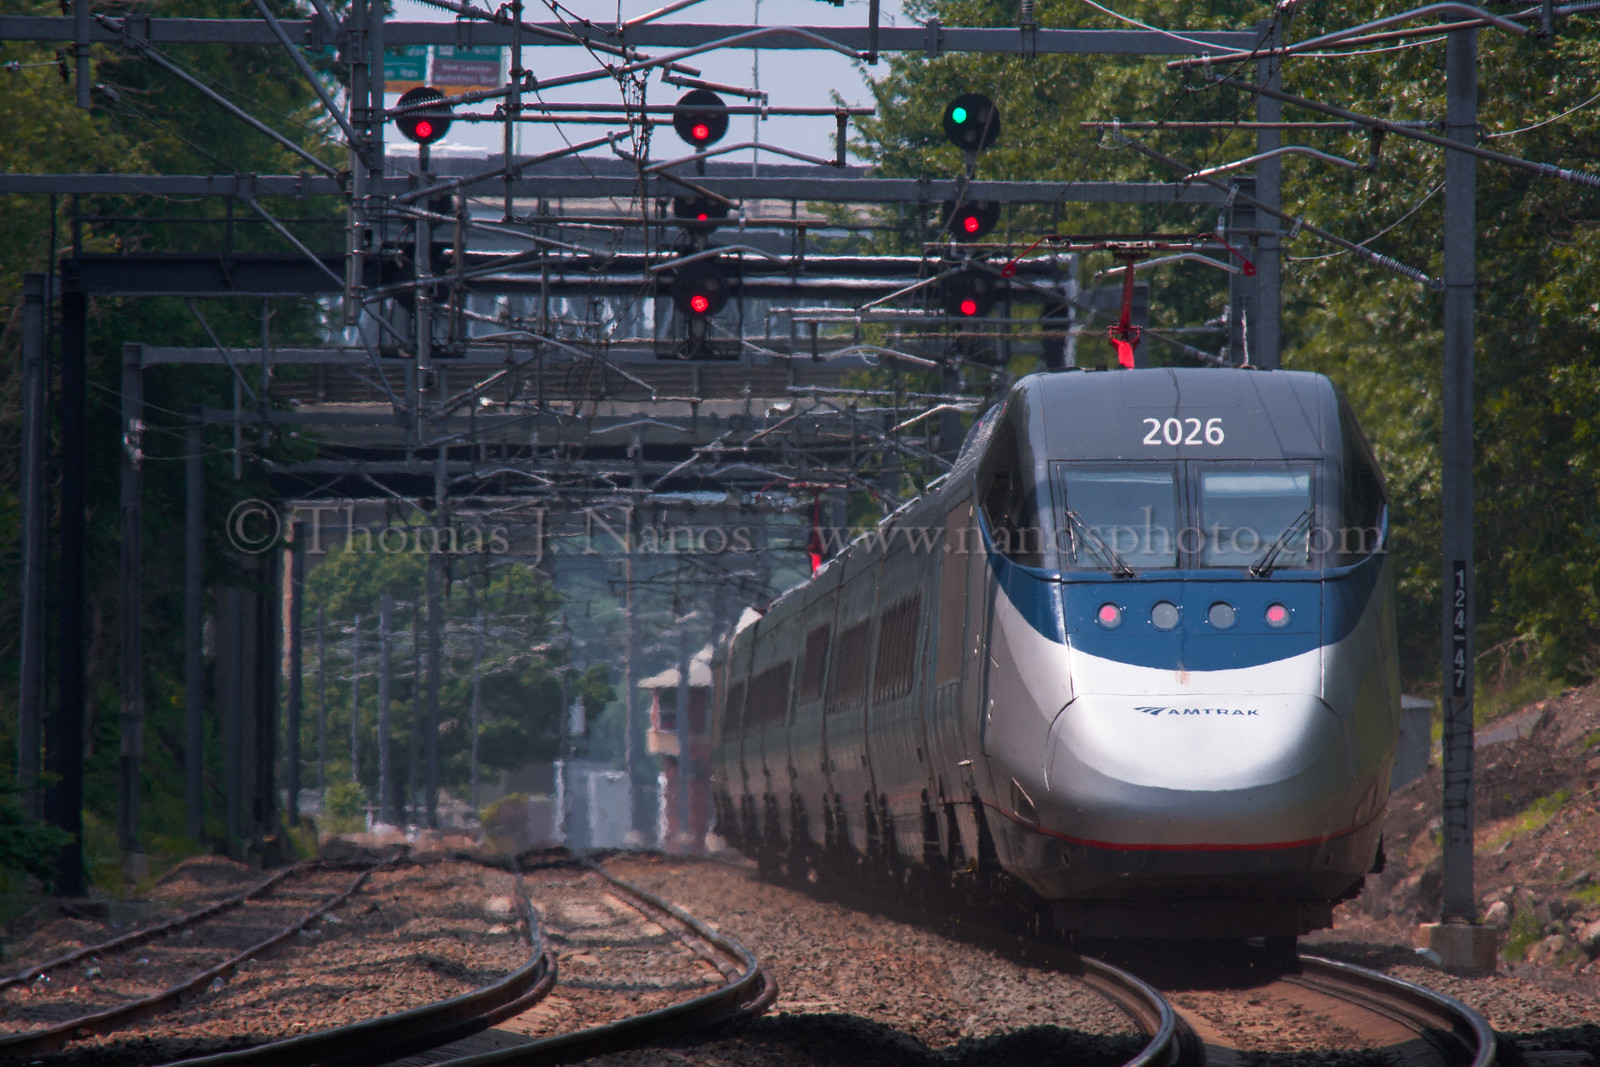 Acela and a High Green<br /> A westbound Amtrak Acela heads for Groton Interlocking,which is showing a high green signal